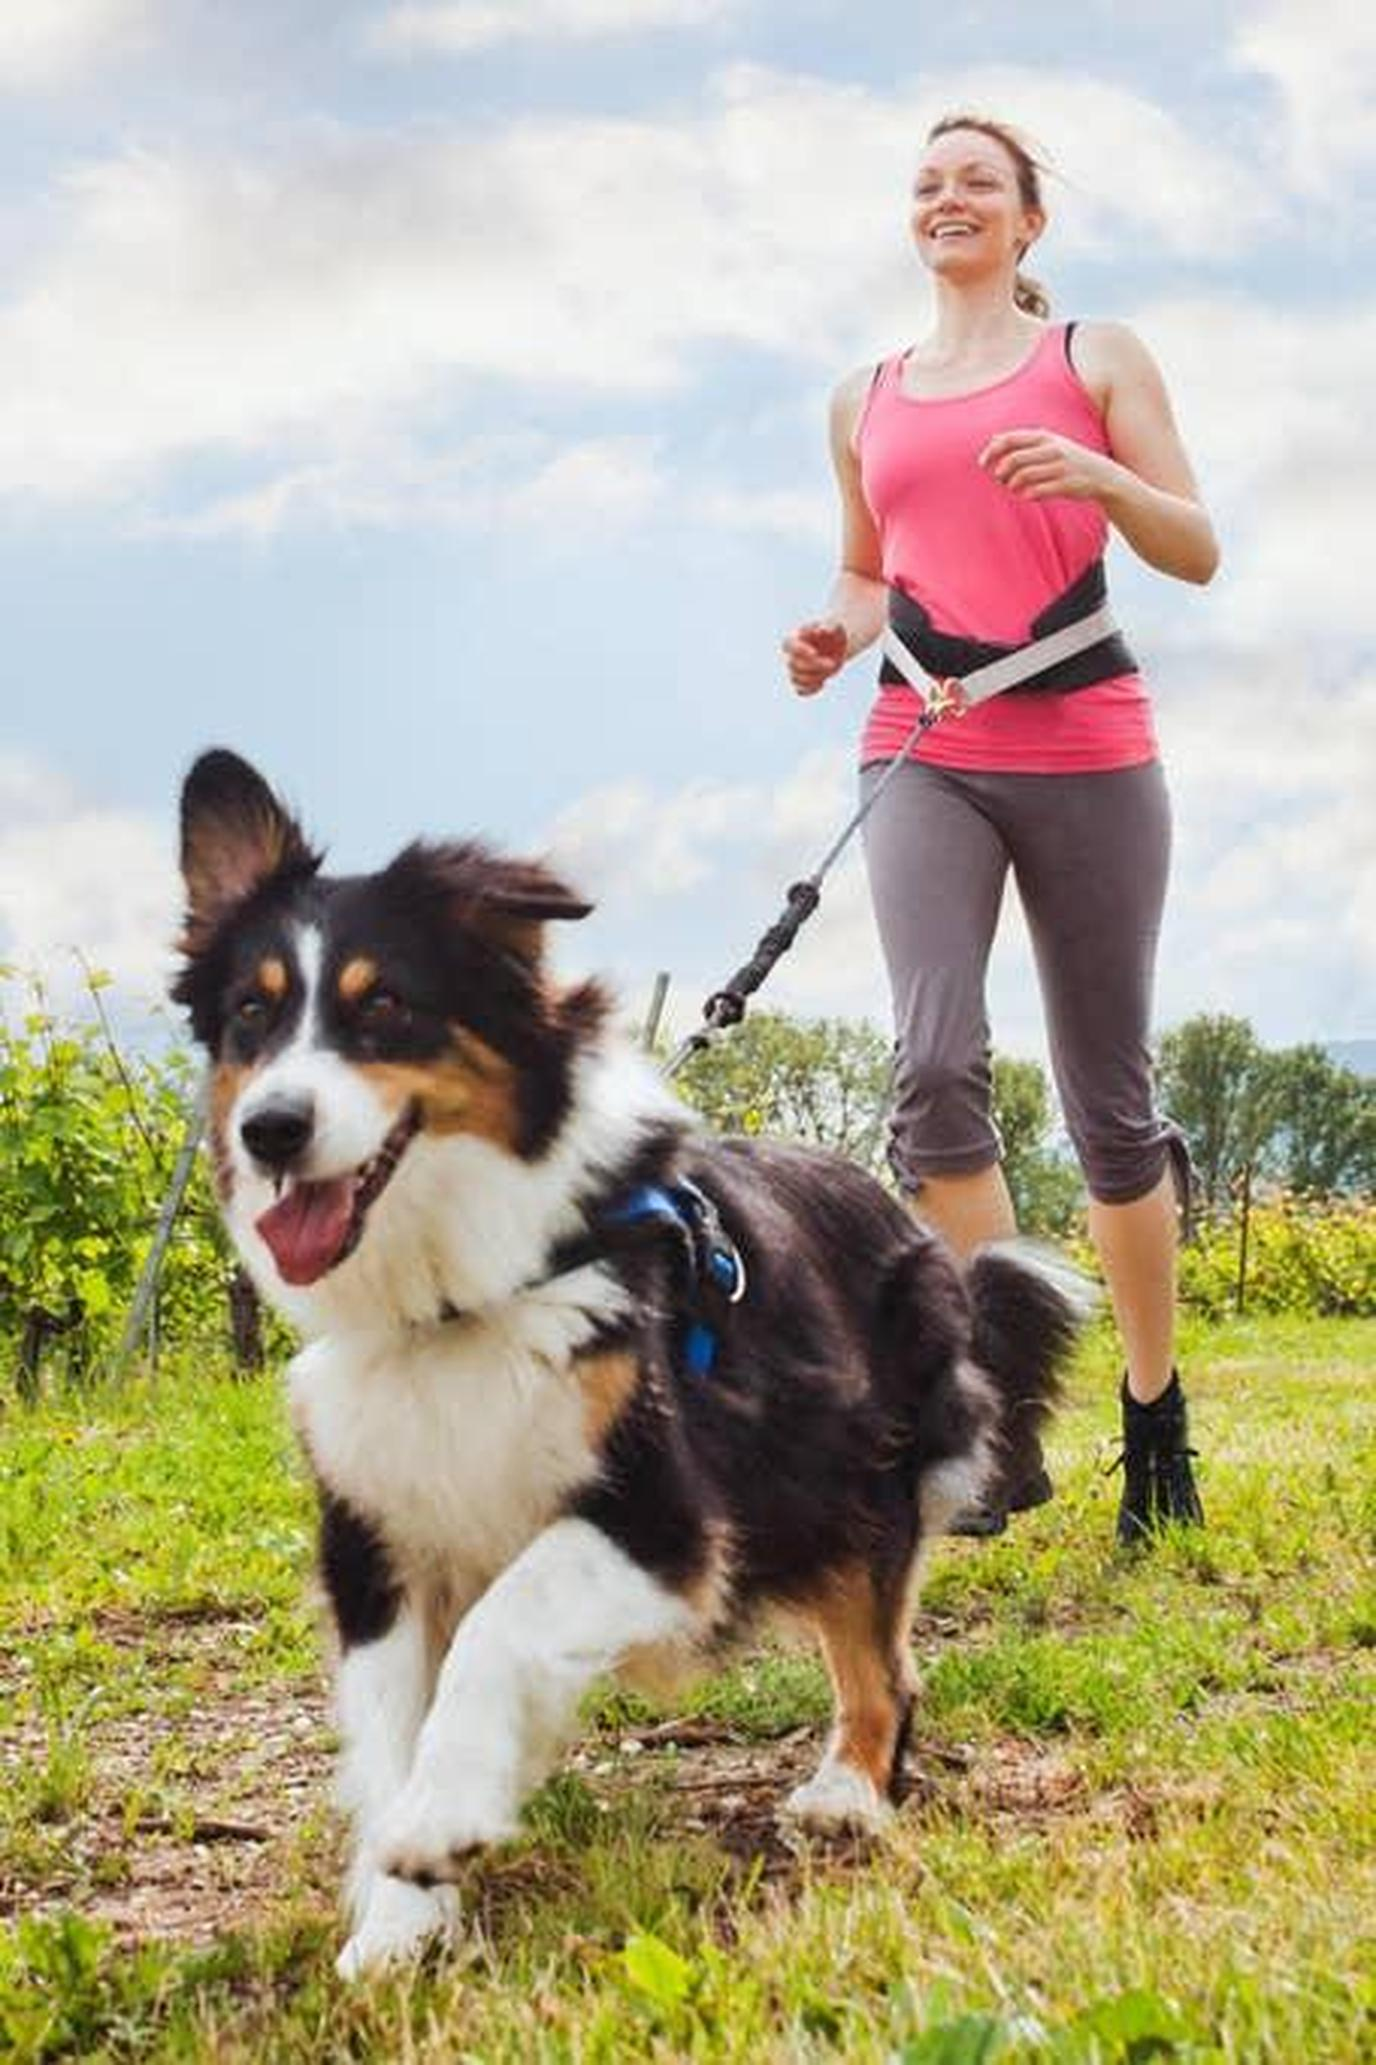 A Woman Runs With a Dog Tethered to Her Waist During a Canicross Run.